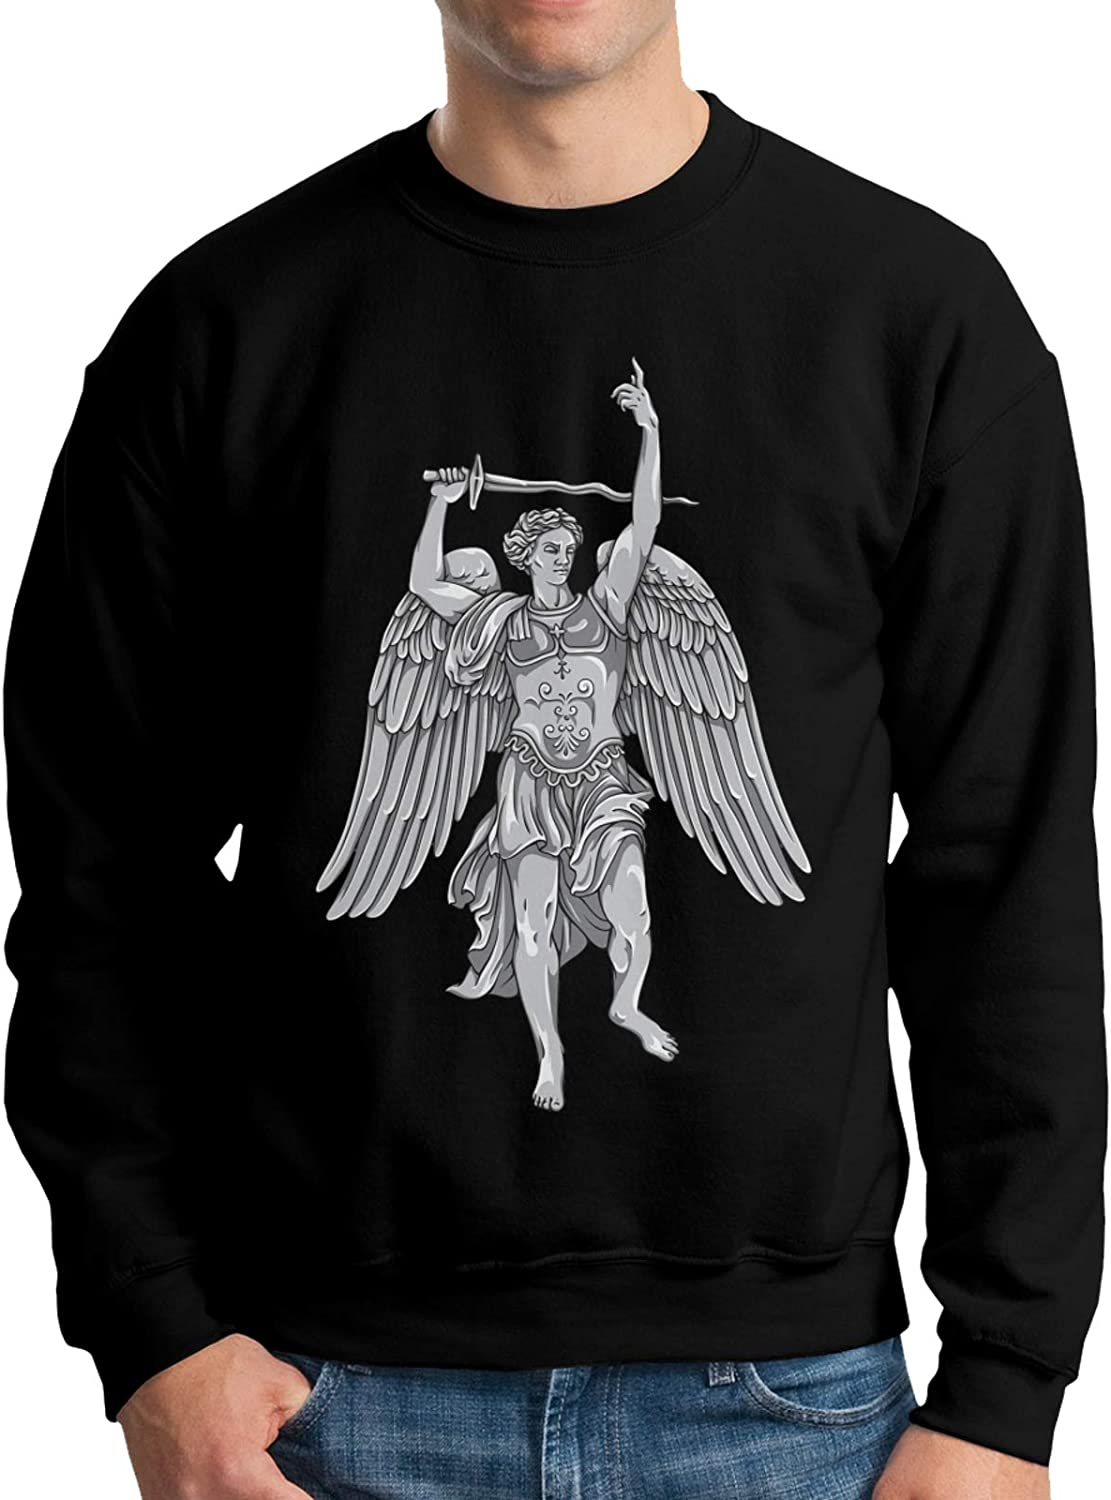 Archangel Michael Sweaters Sale special price Classic Pullover Crewneck All items in the store Sweatshirts